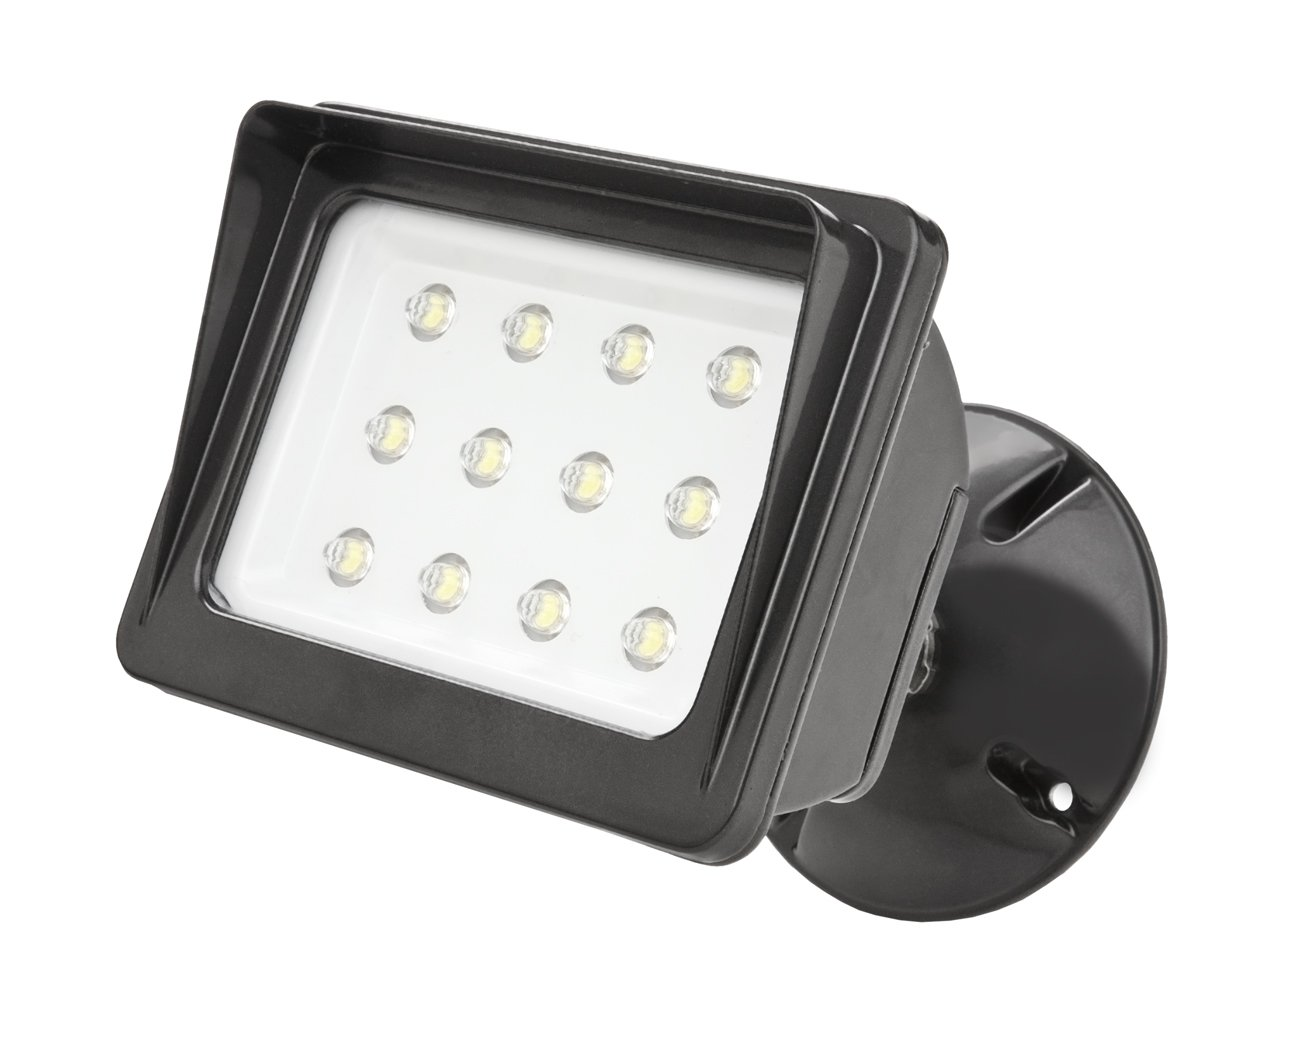 Designers Edge L1673br 12 Led Square Wall Mount Led Flood Light With Backplate